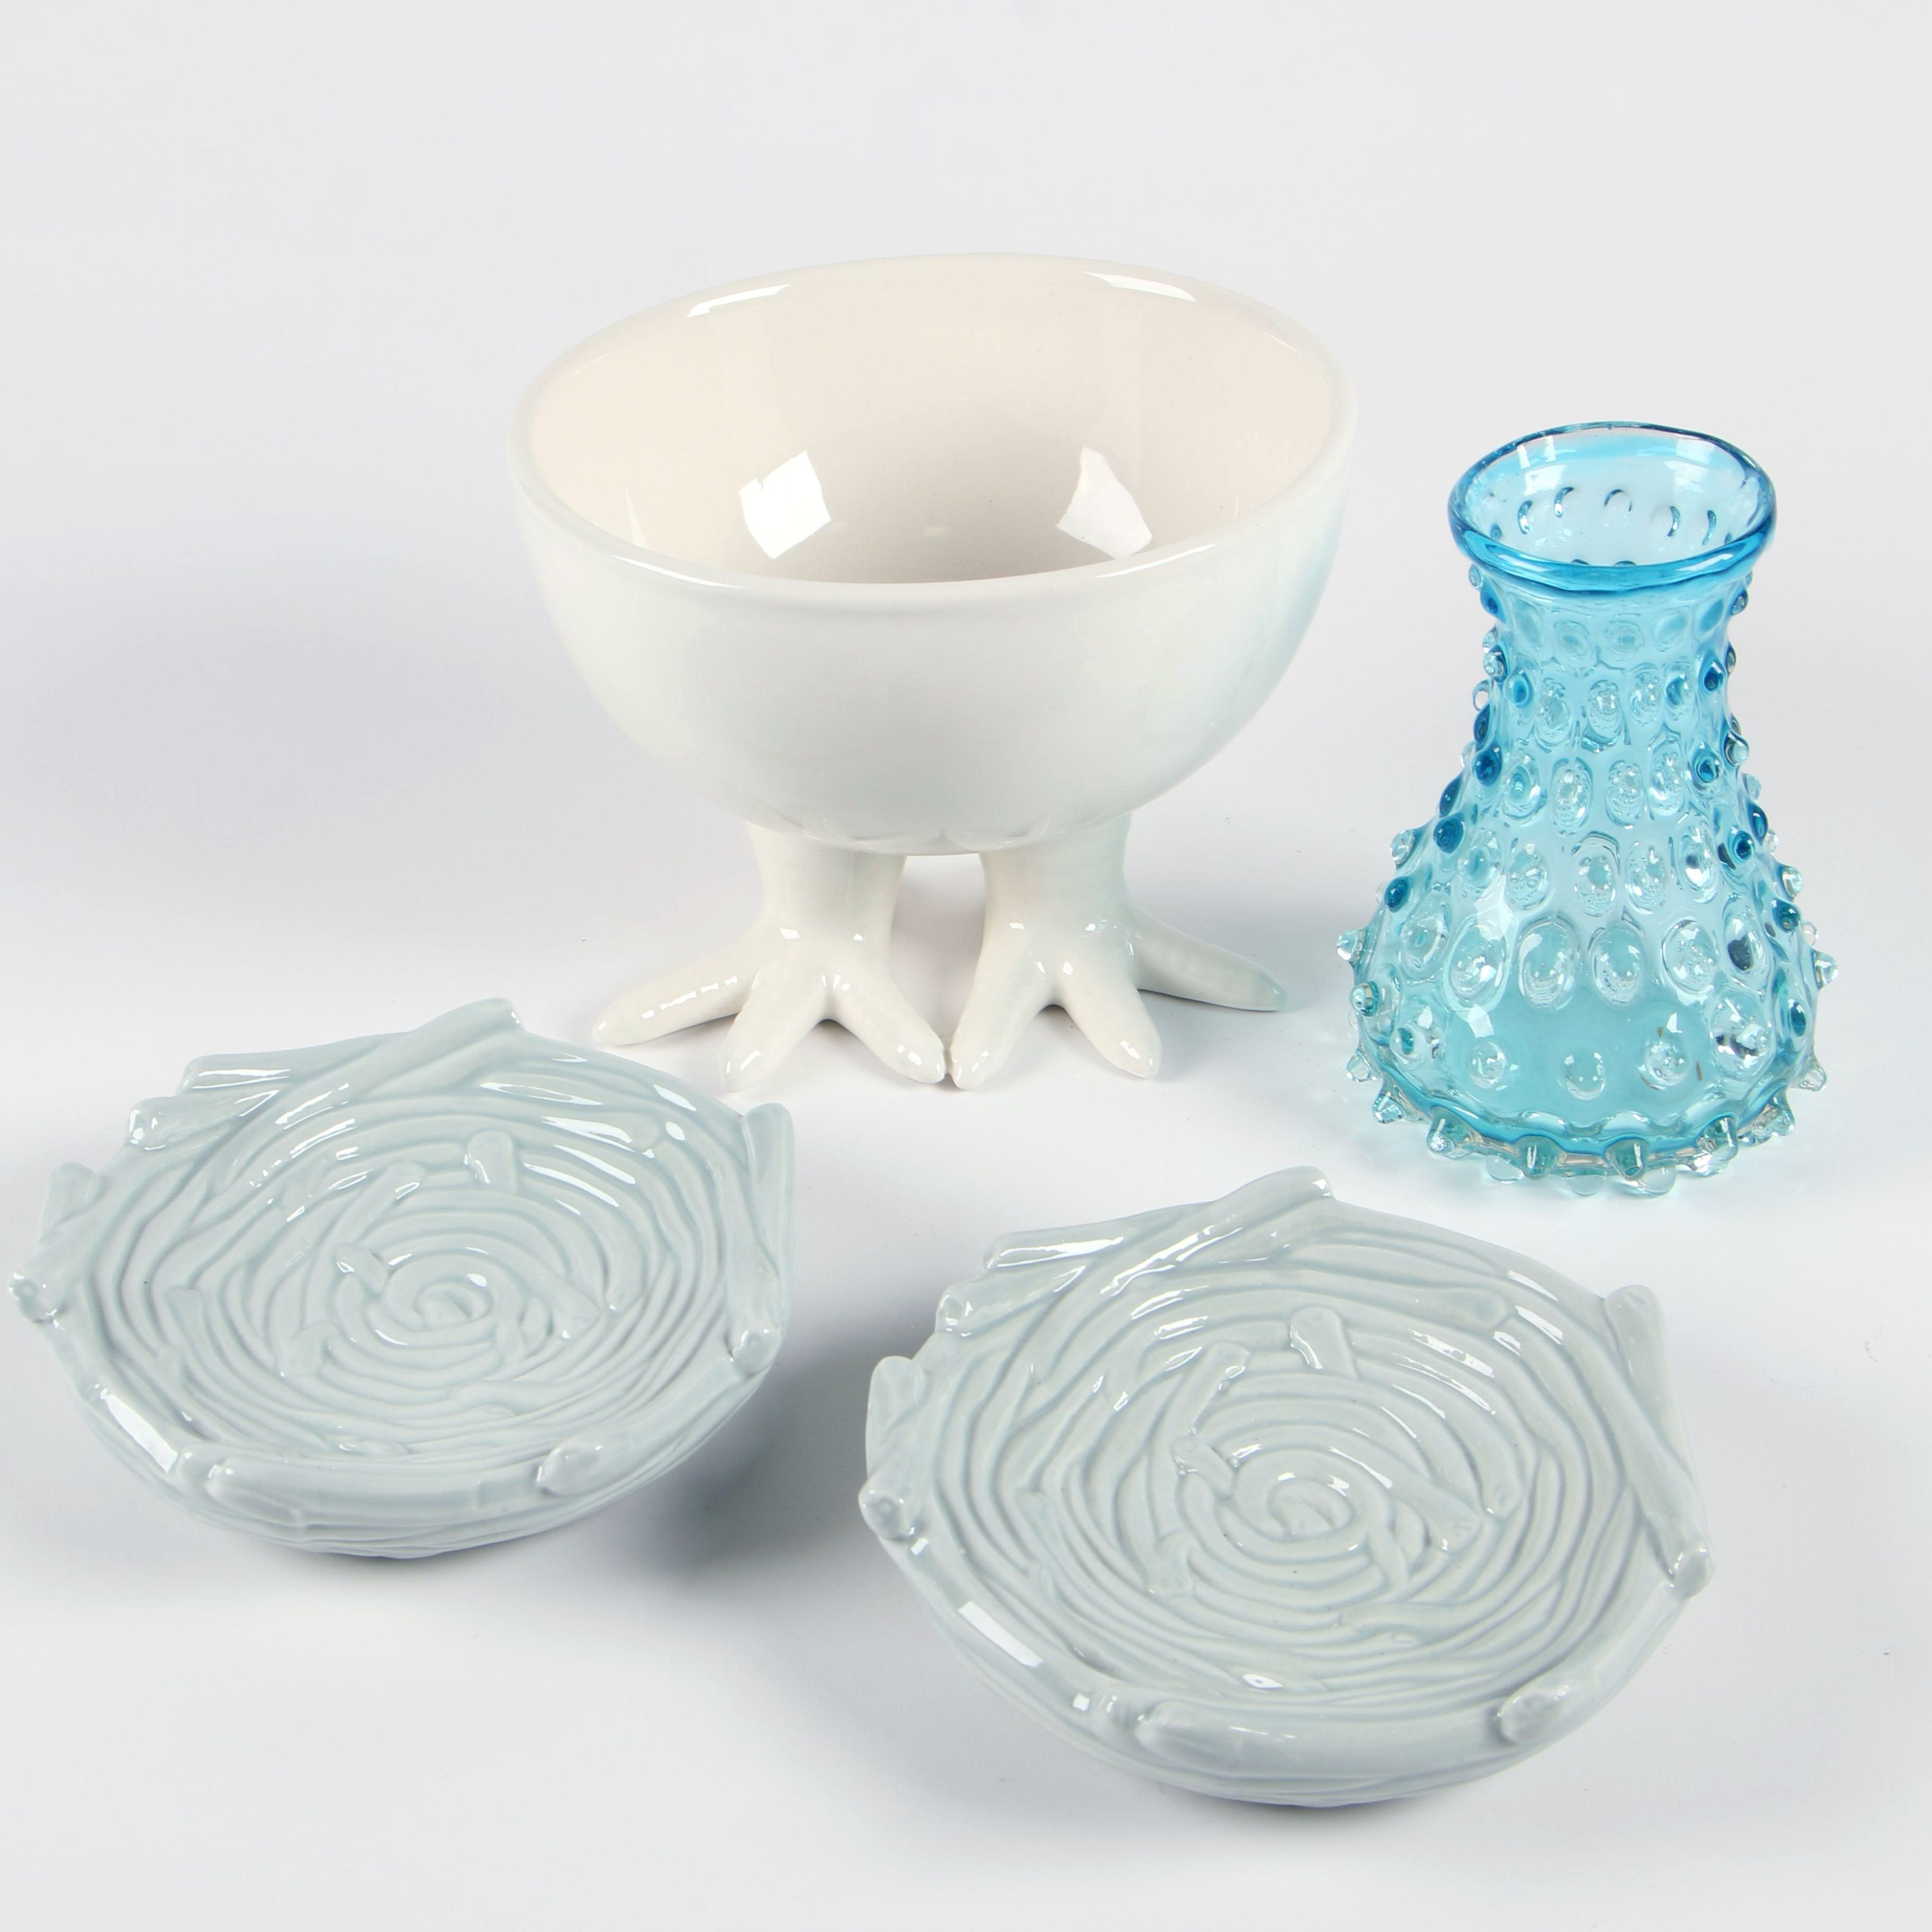 Ceramic Chicken Footed Bowl with Nest Dishes and Hobnail Glass Vase